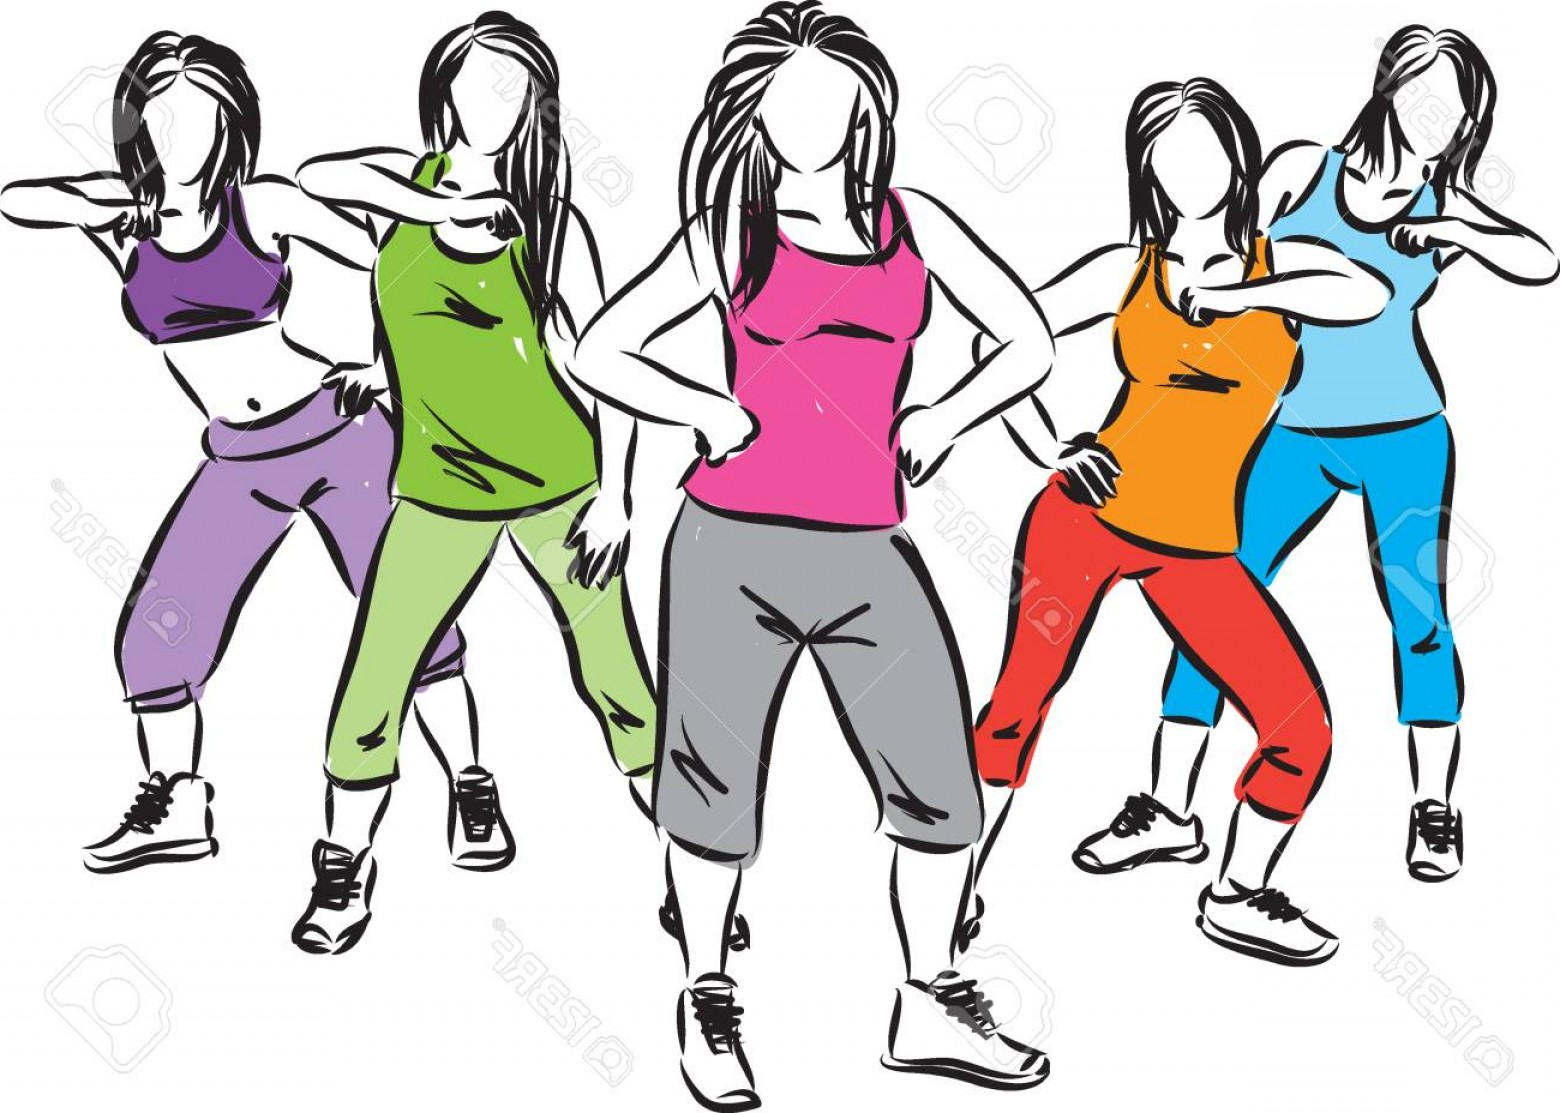 Zumba Vector Illustration: Photostock Vector Group Of Fitness Women Dancers Illustration